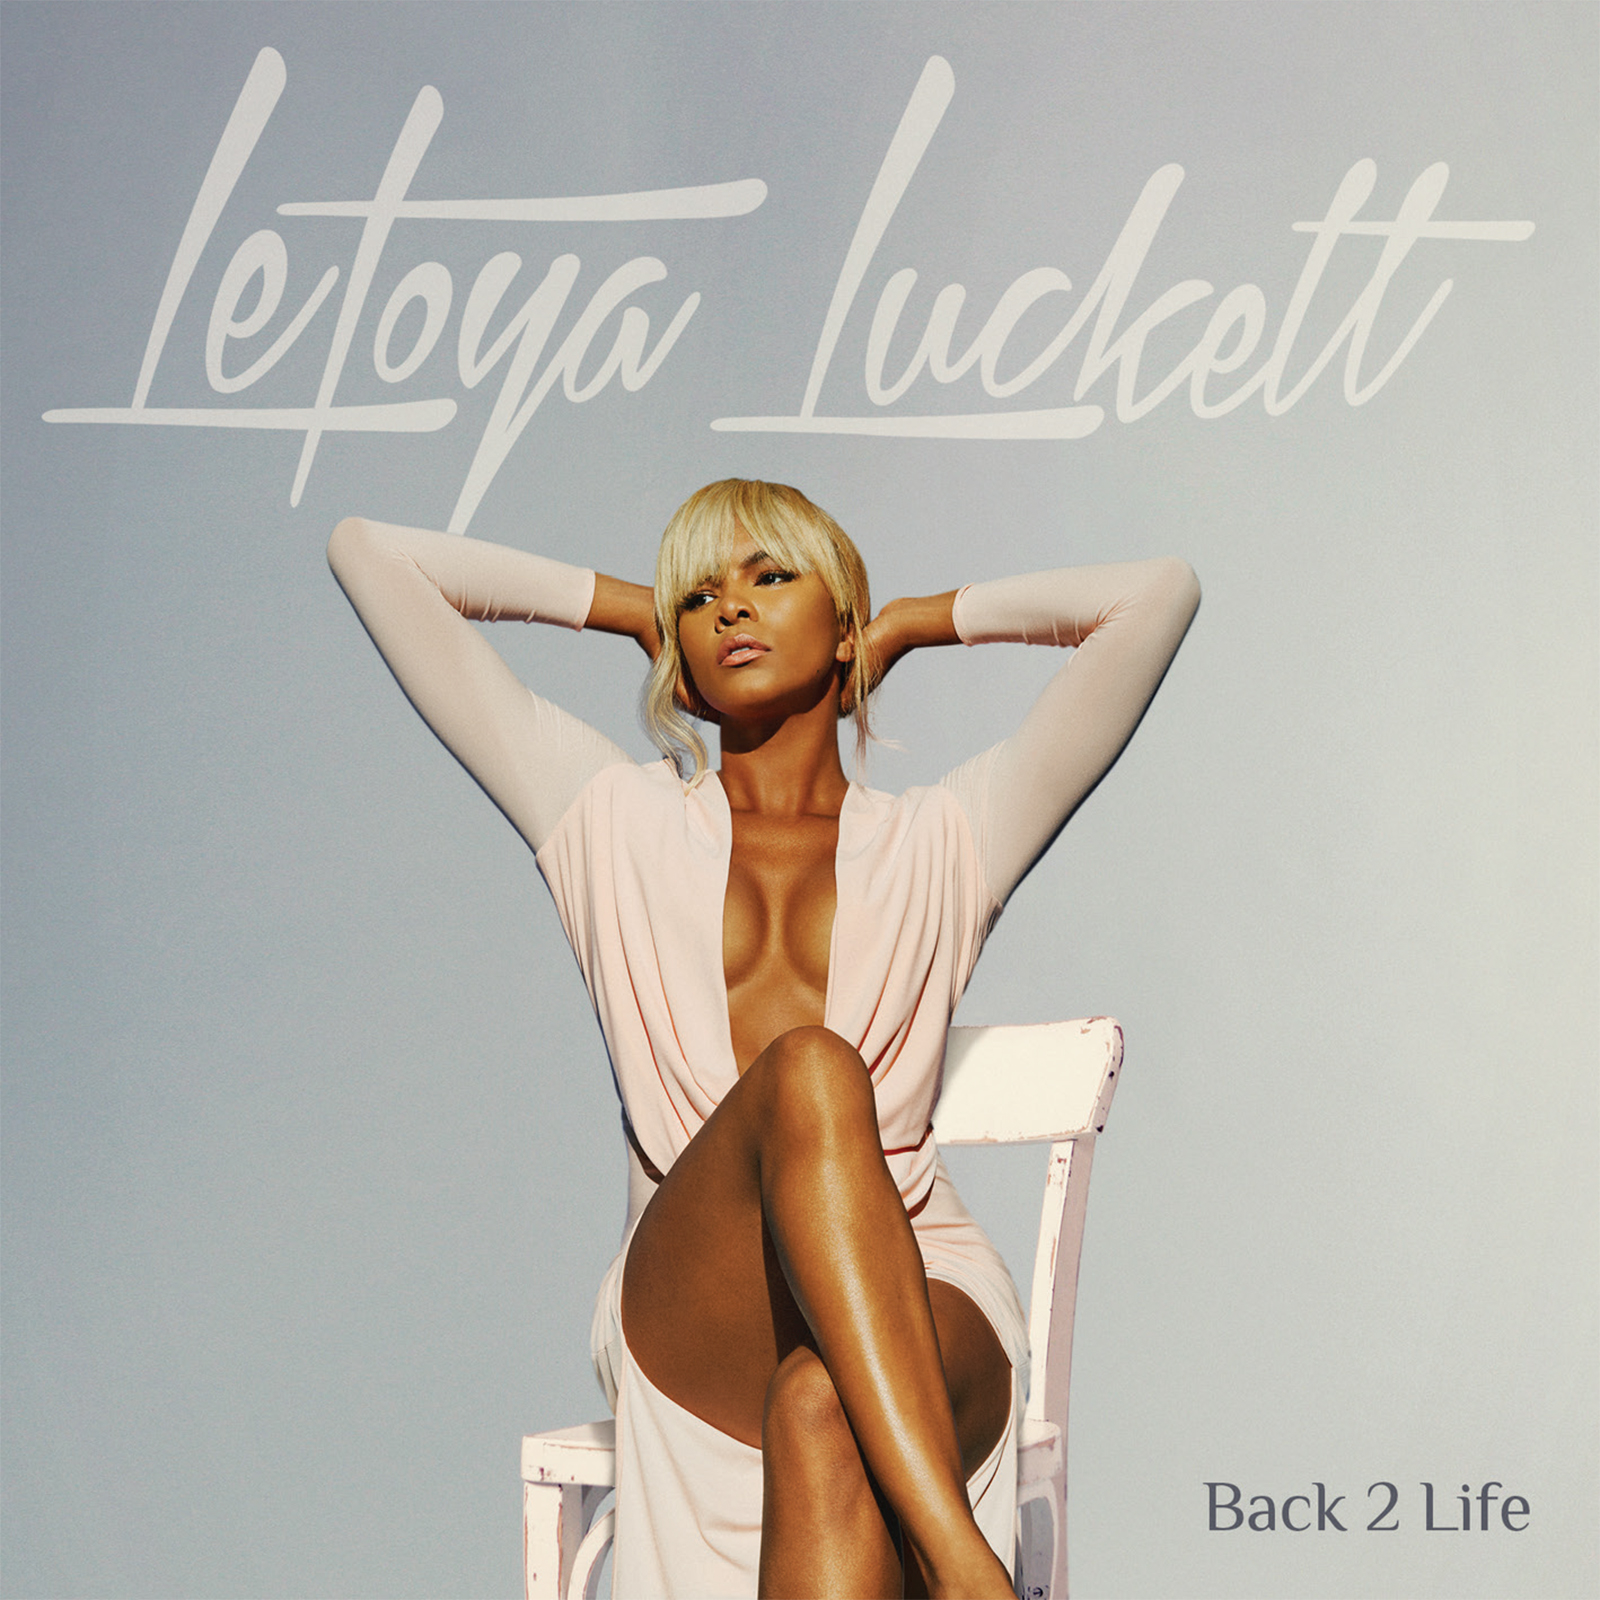 """LeToya Luckett Triumphantly Comes """"Back 2 Life"""" on First Album Since 2009"""